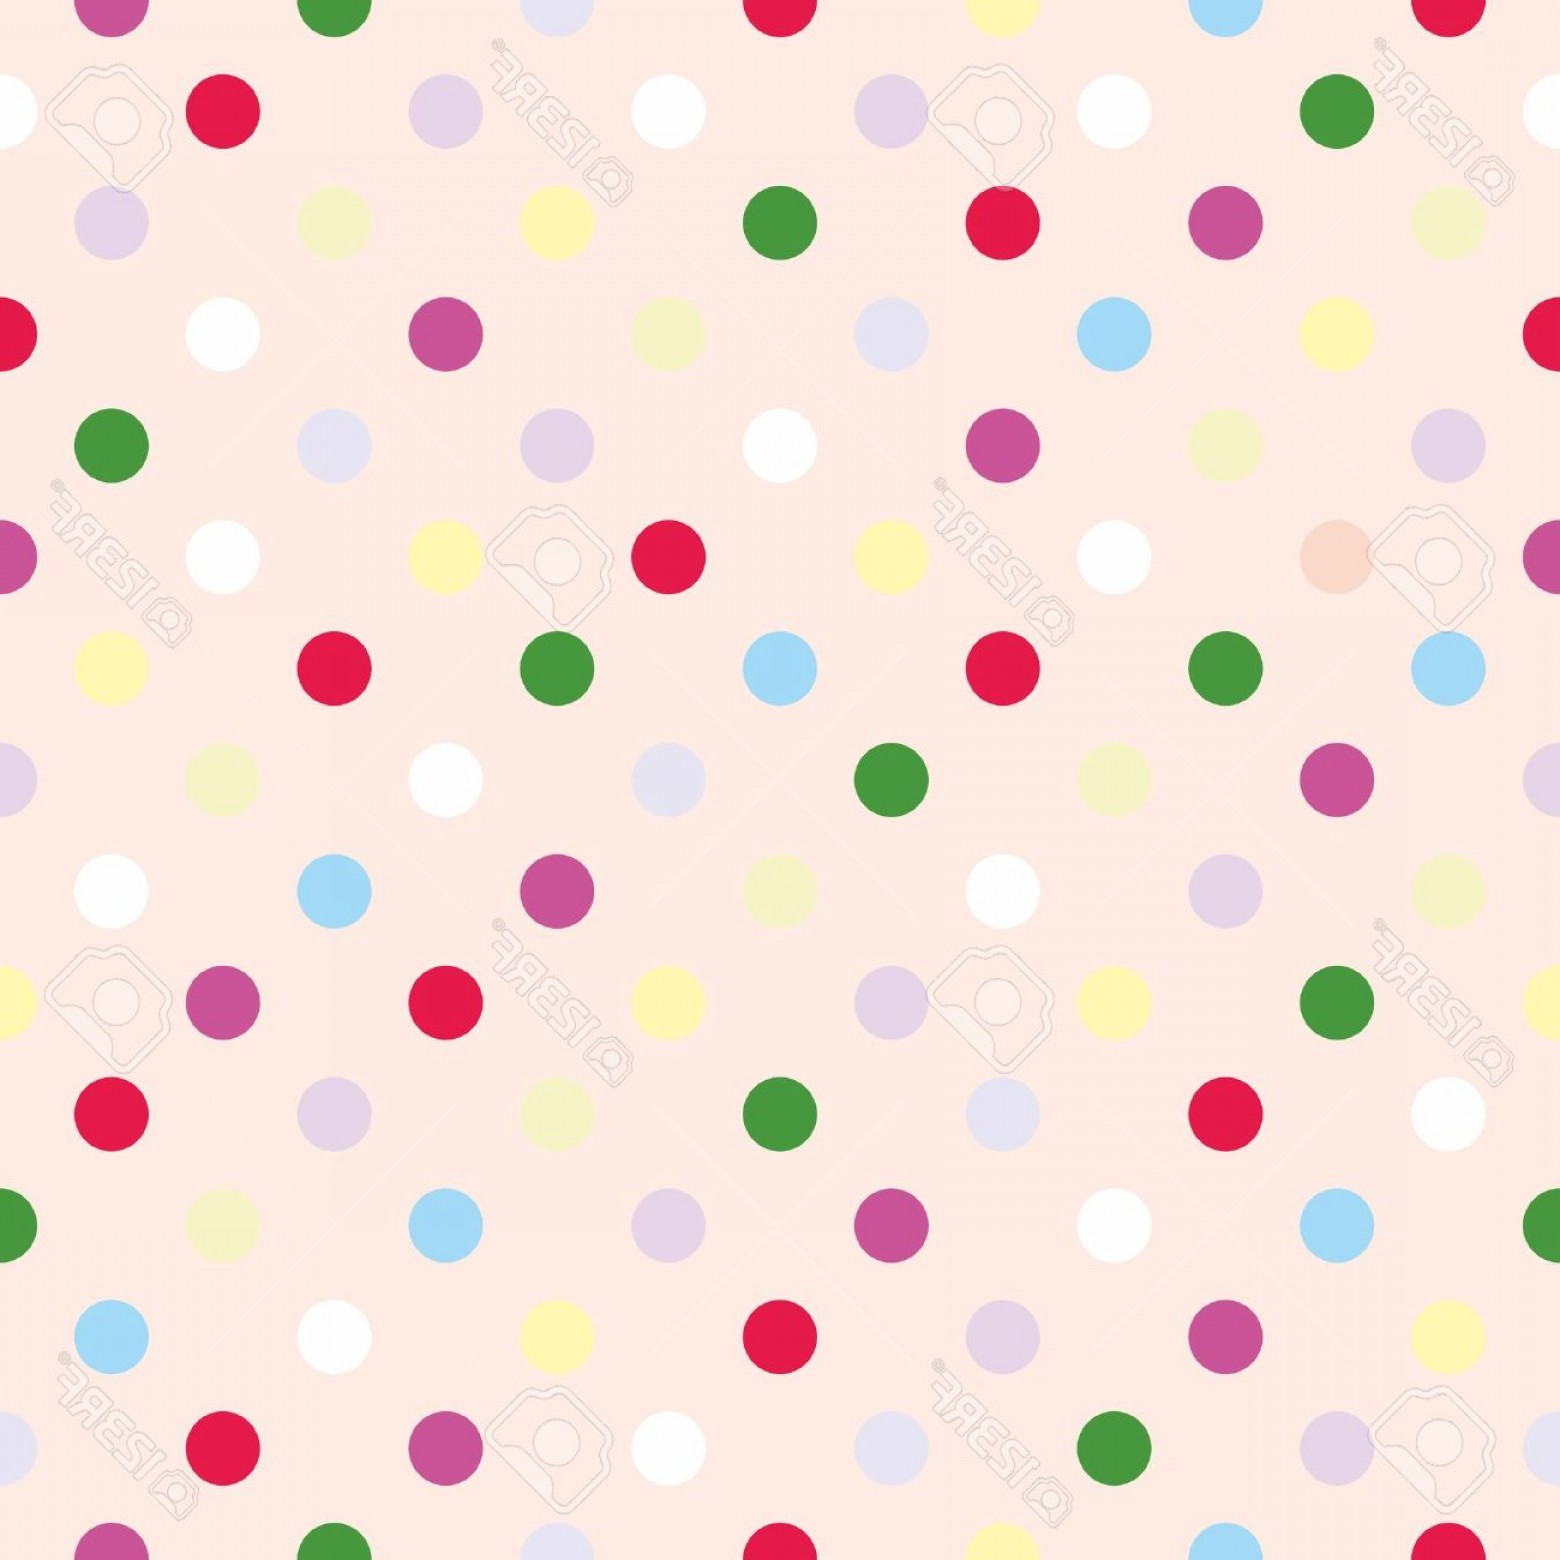 Polka Dot Background Vector Y: Photostock Vector Colorful Vector Background With Red Pink Green Blue White Violet And Yellow Polka Dots On Baby Pink